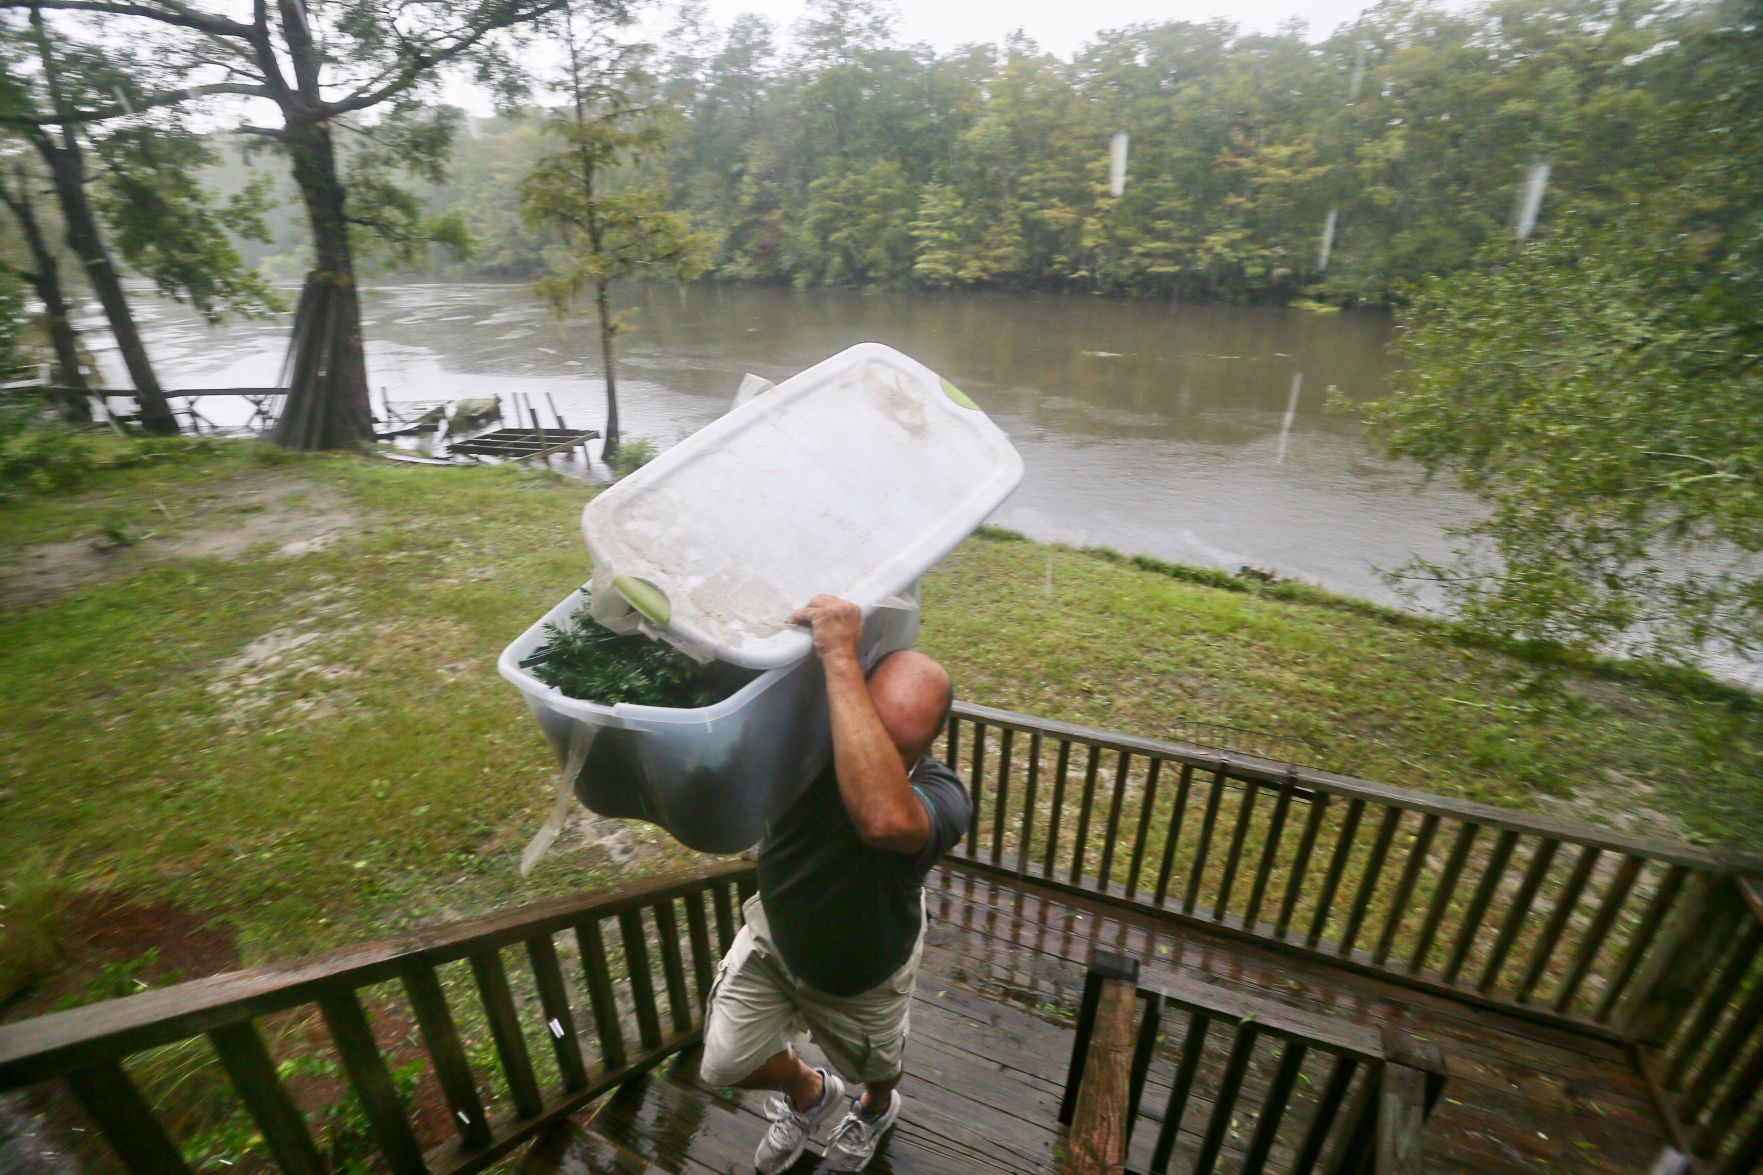 As Florence eyes exit from SC, a tame forecast for Charleston area this week | Post and Courier